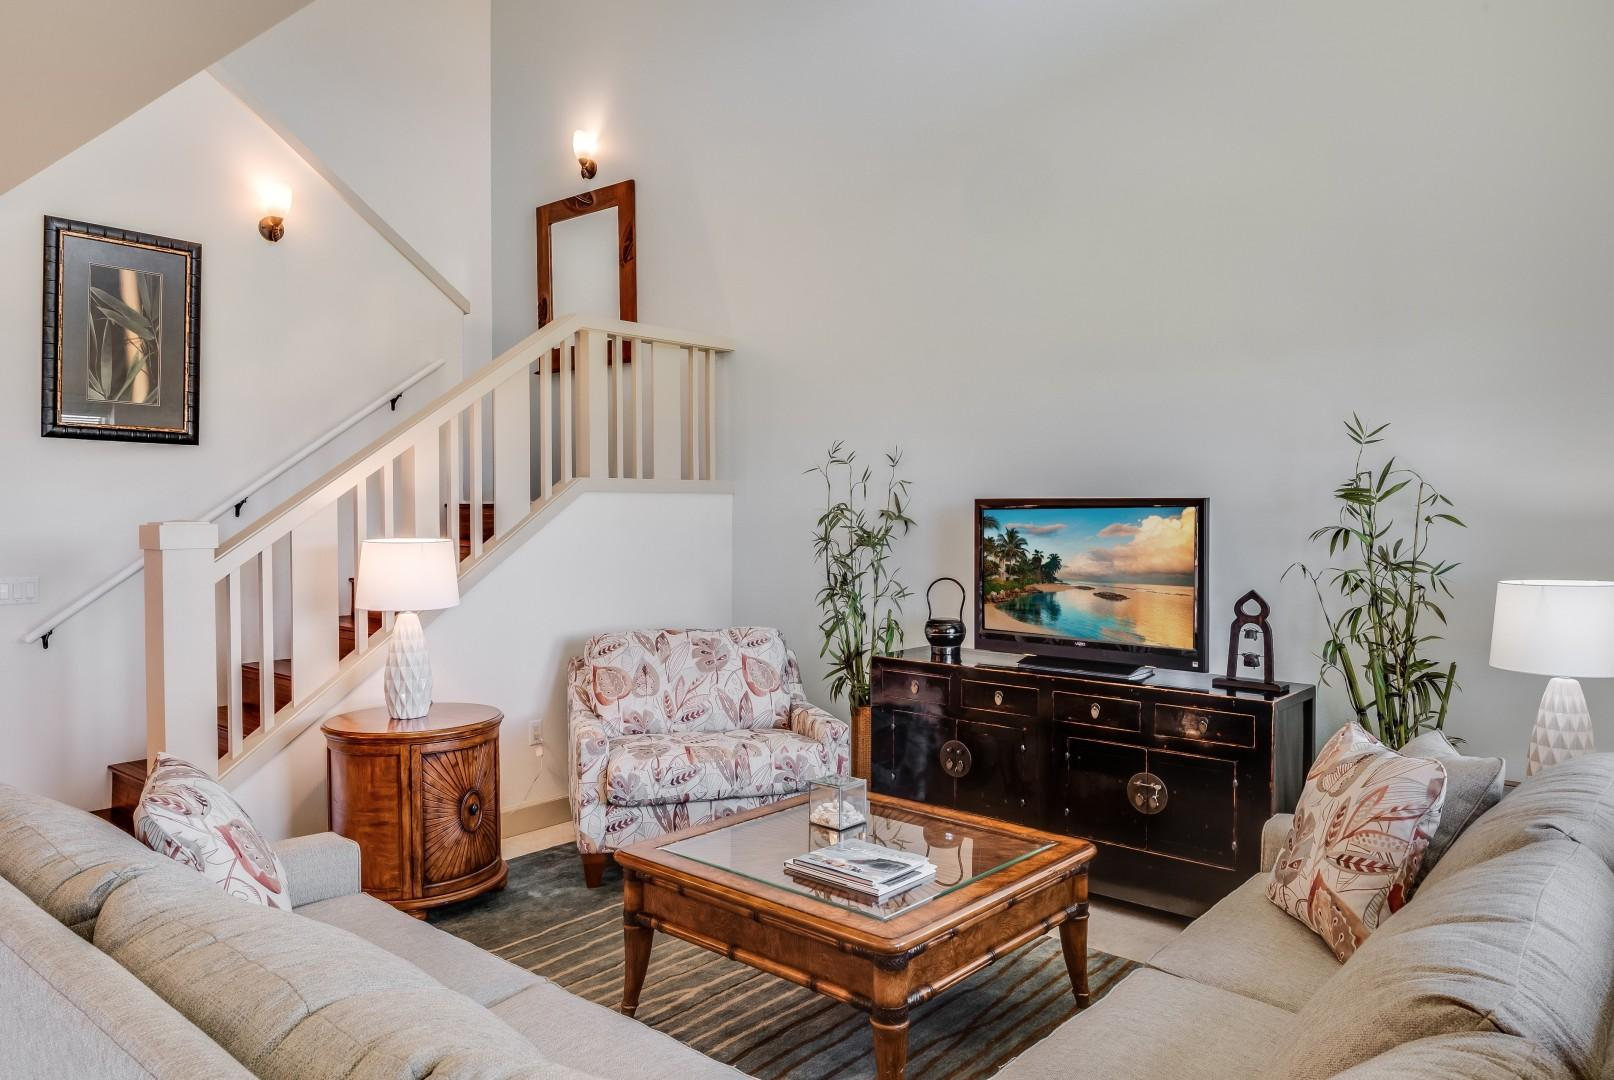 Beautiful & bright living room with two-story ceiling, staircase to second floor bedrooms